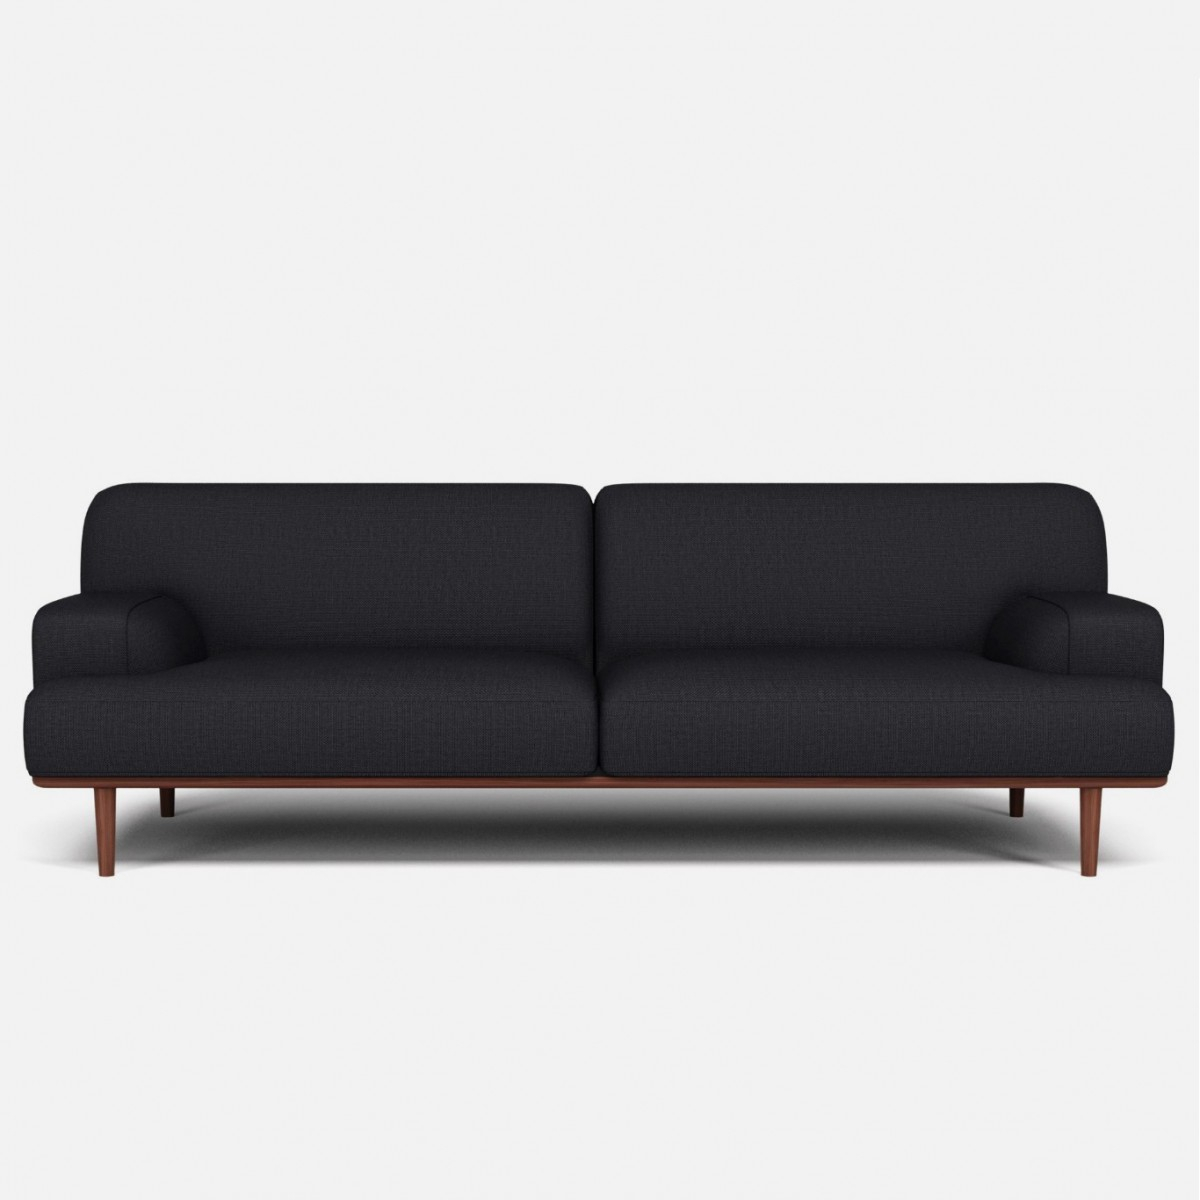 Madison Velvet Sofa 3 Seaters London Dark Grey – Bolia With London Dark Grey Sofa Chairs (Image 13 of 20)